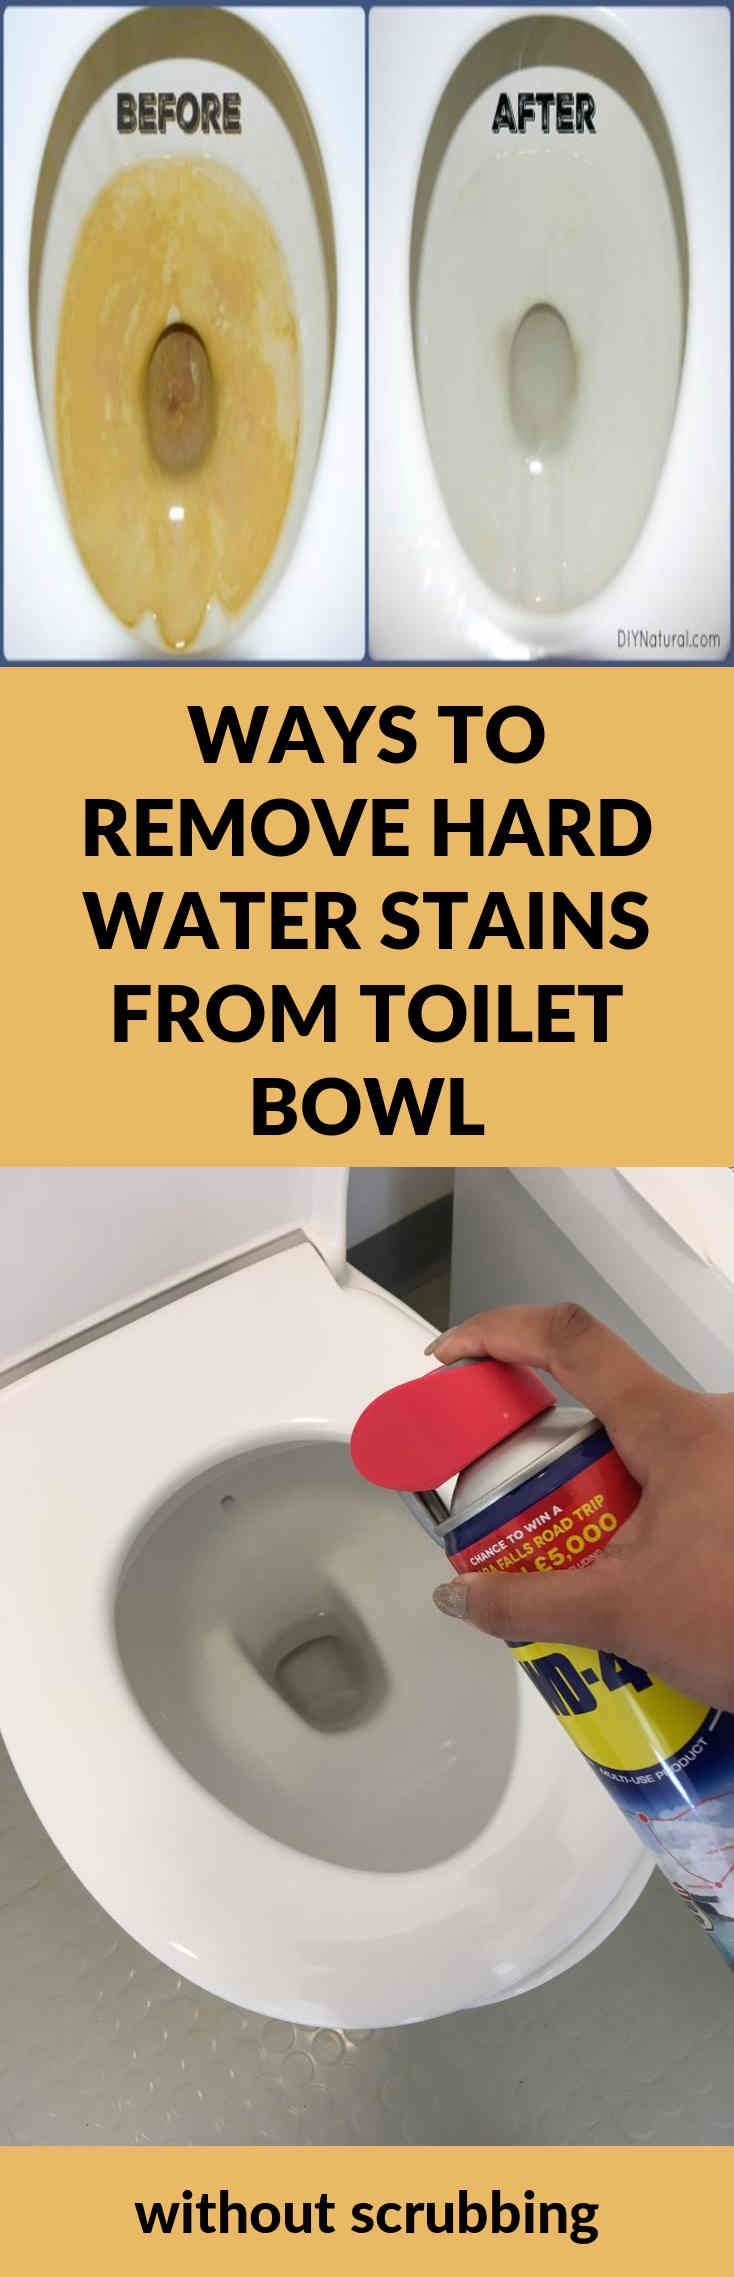 How to remove hard water stains from toilets